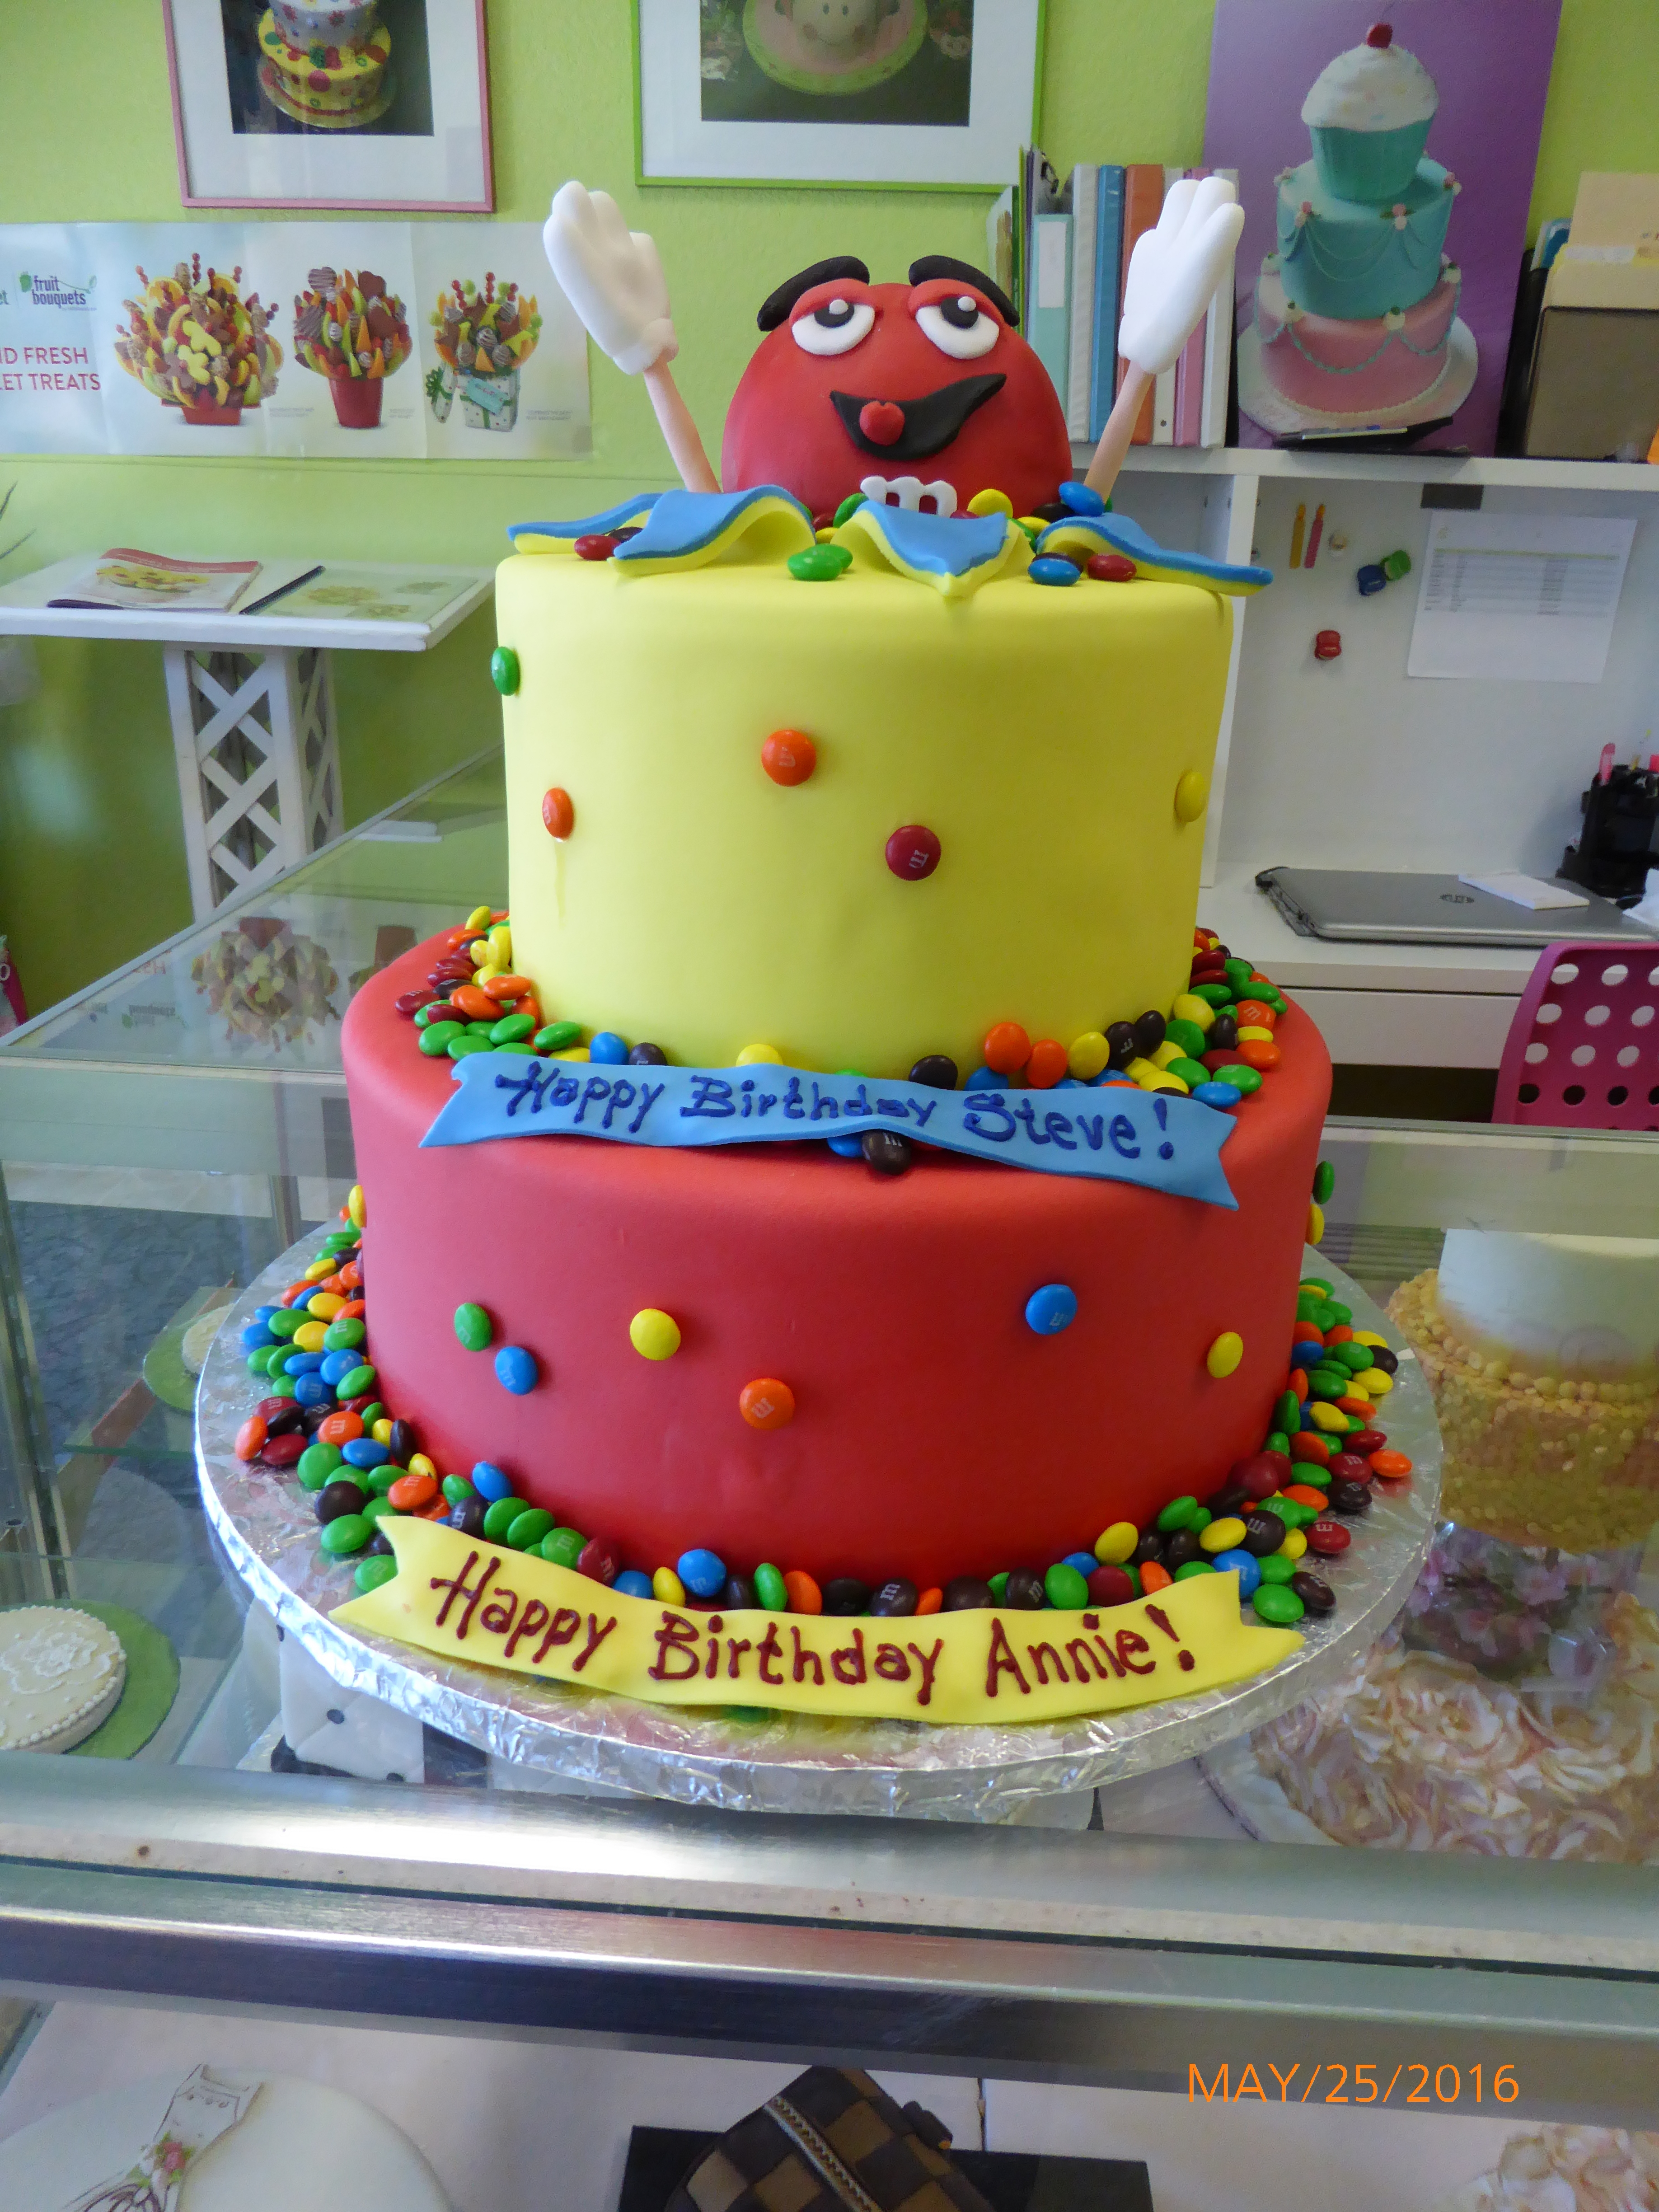 3007, birthday, m&ms, red, yellow, figure, tiered